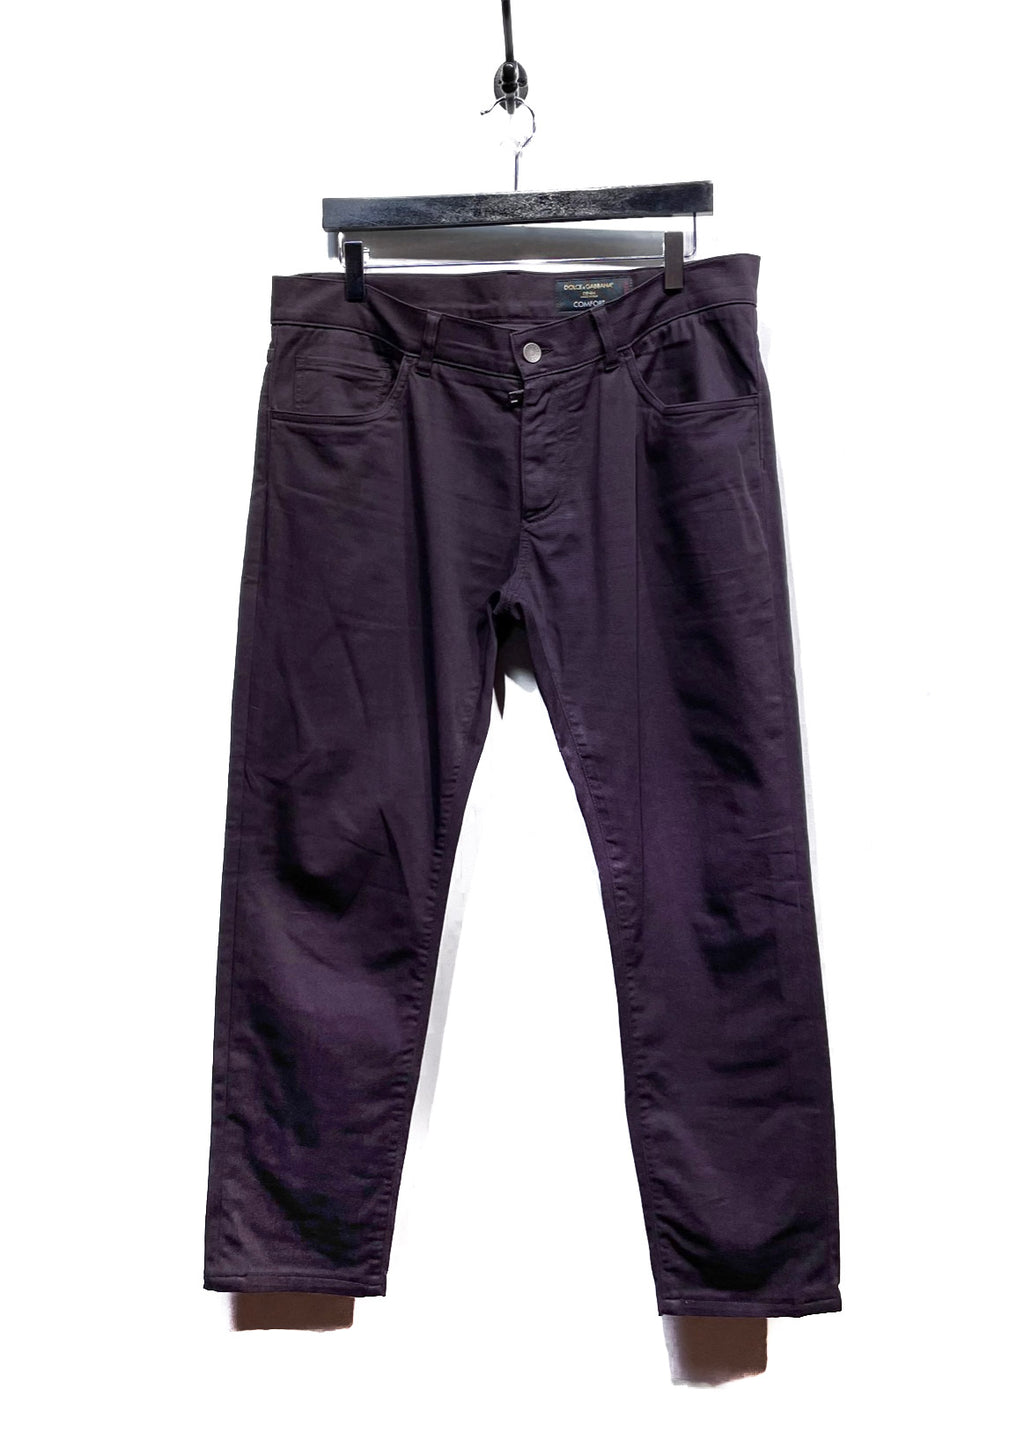 Dolce & Gabbana Purple Comfort Stretch Denim